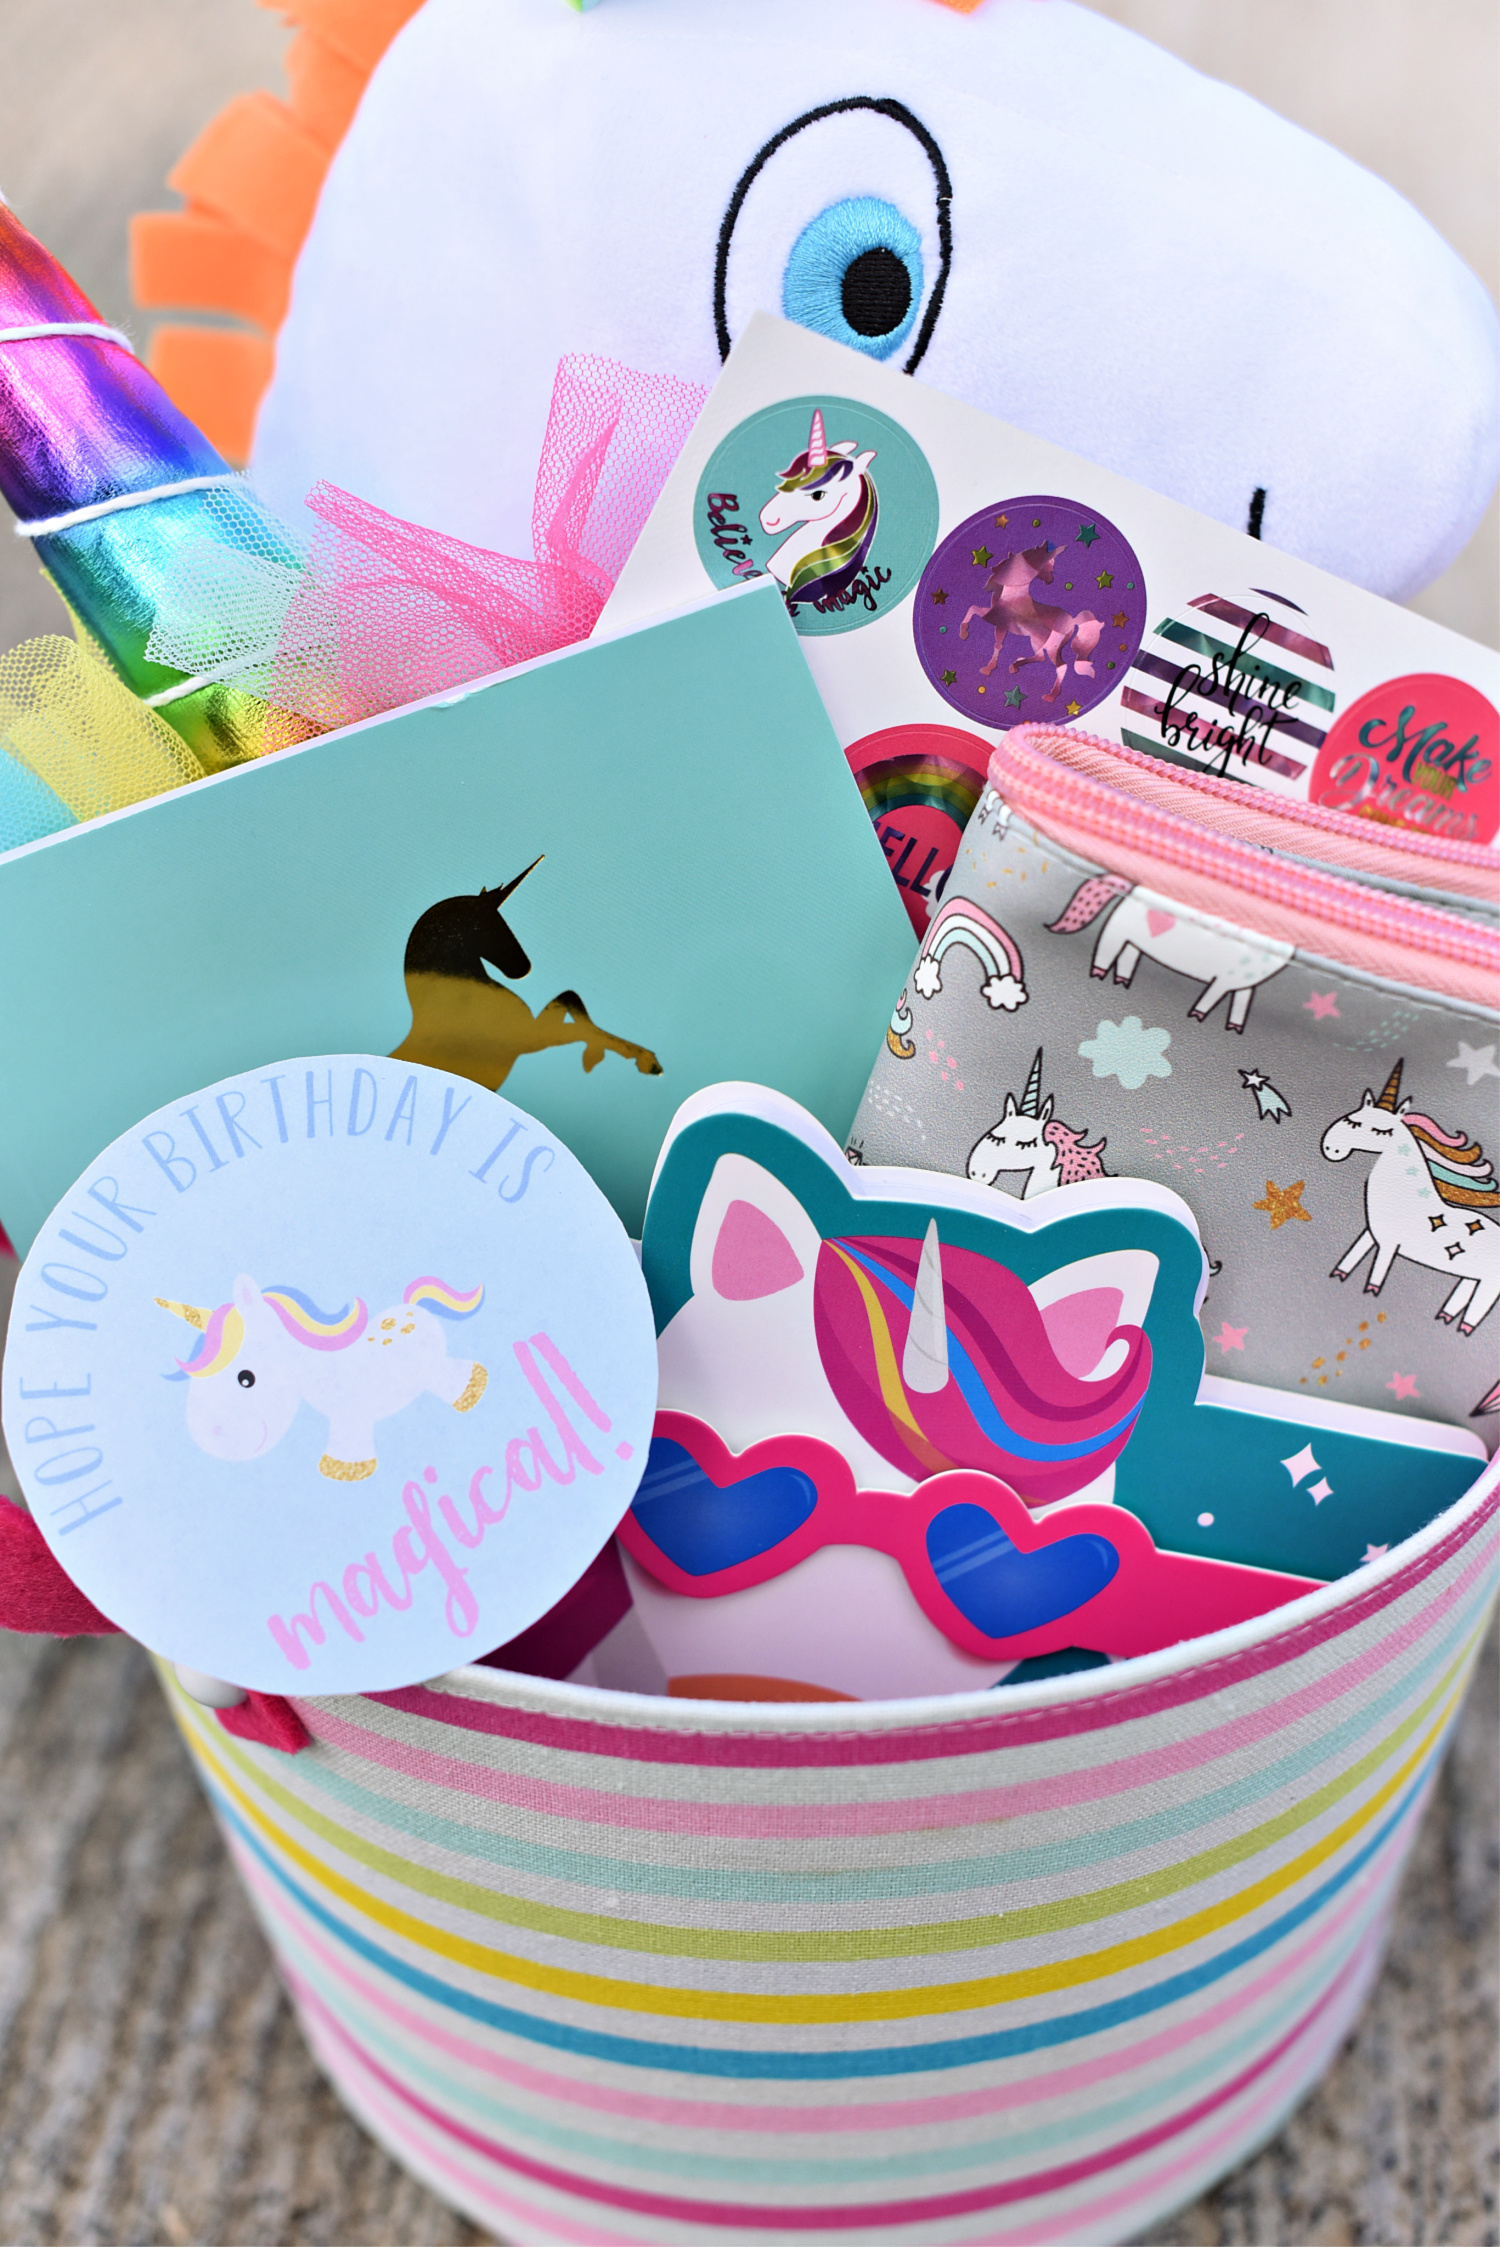 Everyones Probably Searching For Fun Unicorn Birthday Gifts And This One Is Perfect Because You Can Make It As Big Or Small Want Then Add